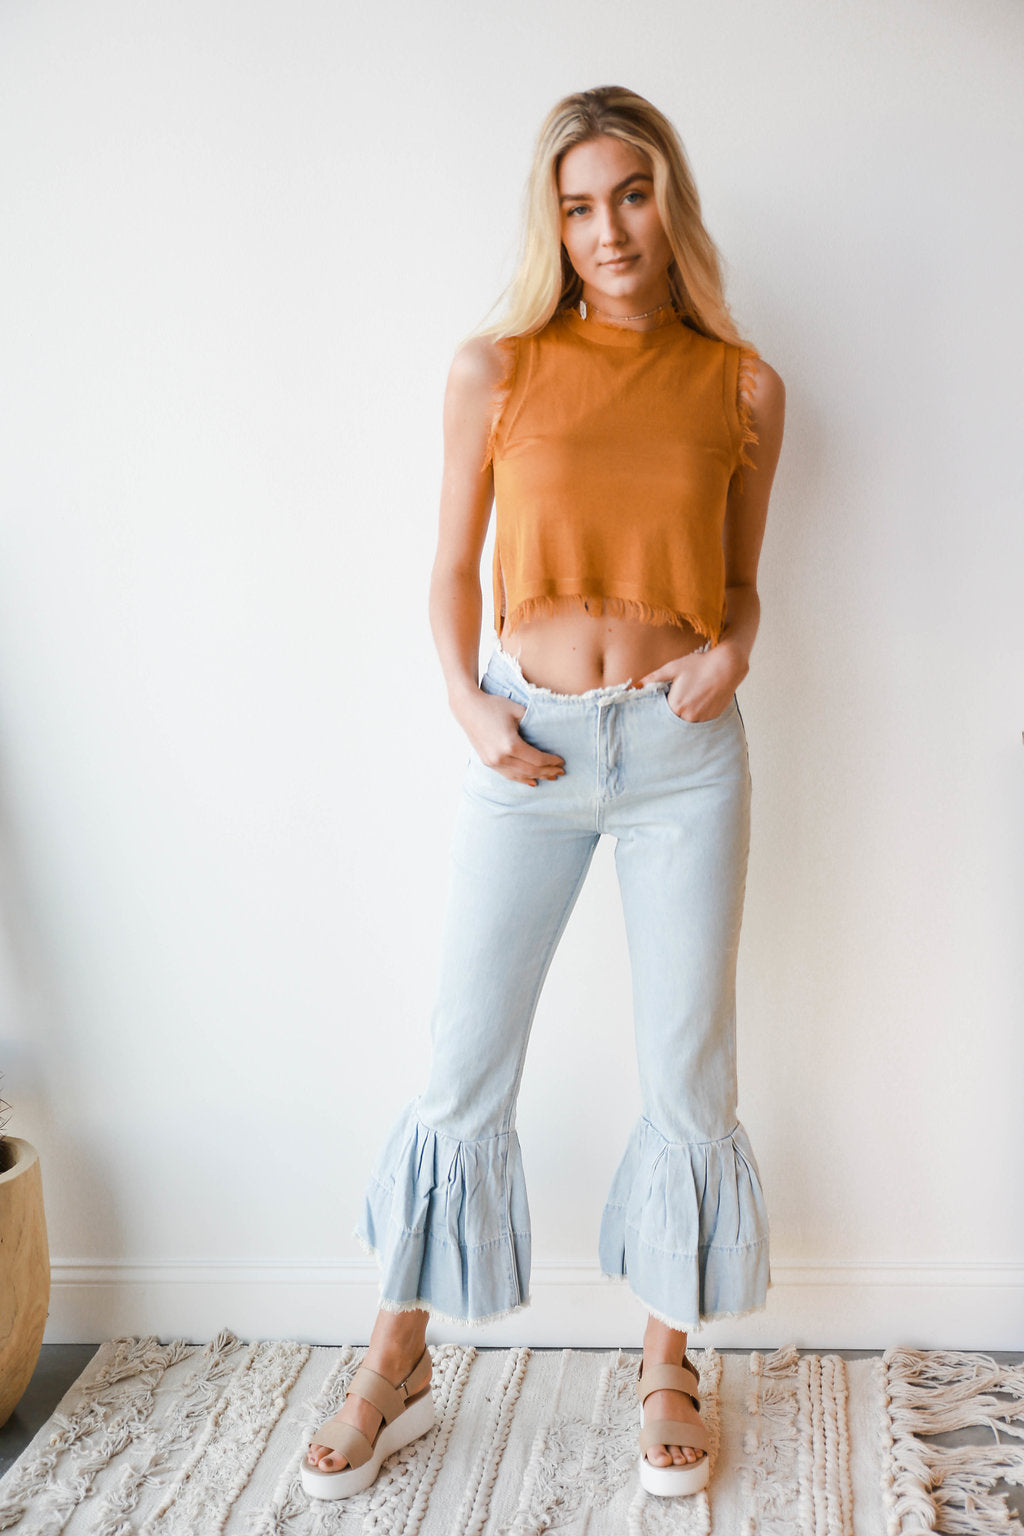 [shop name], deep thoughts fringe edge top